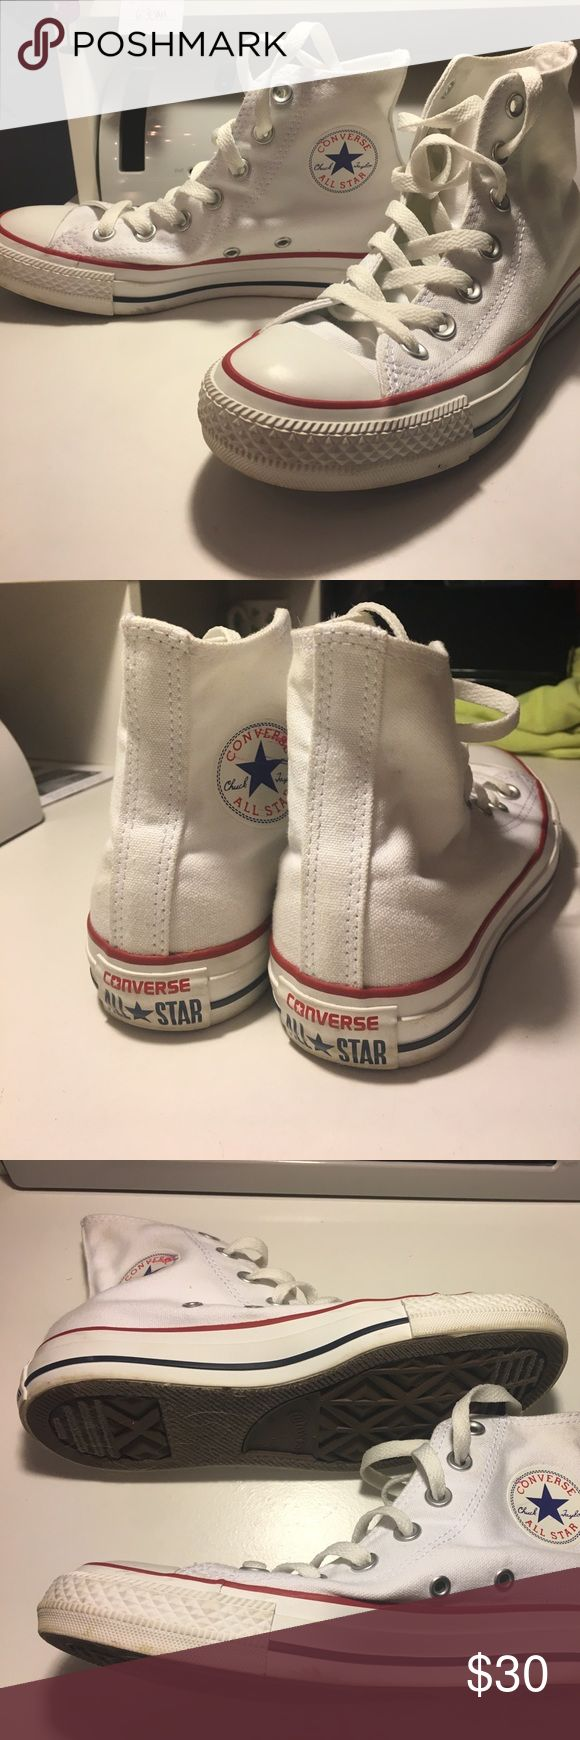 High top Chuck Taylors White high top converse Chuck Taylors! Worn a few times, I wasn't all that crazy about them! I would rather just low tops. These are in great condition just could use a good cleaning. Just some minor scuffs on the toes and some on the putter sole of shoes. Converse Shoes Athletic Shoes